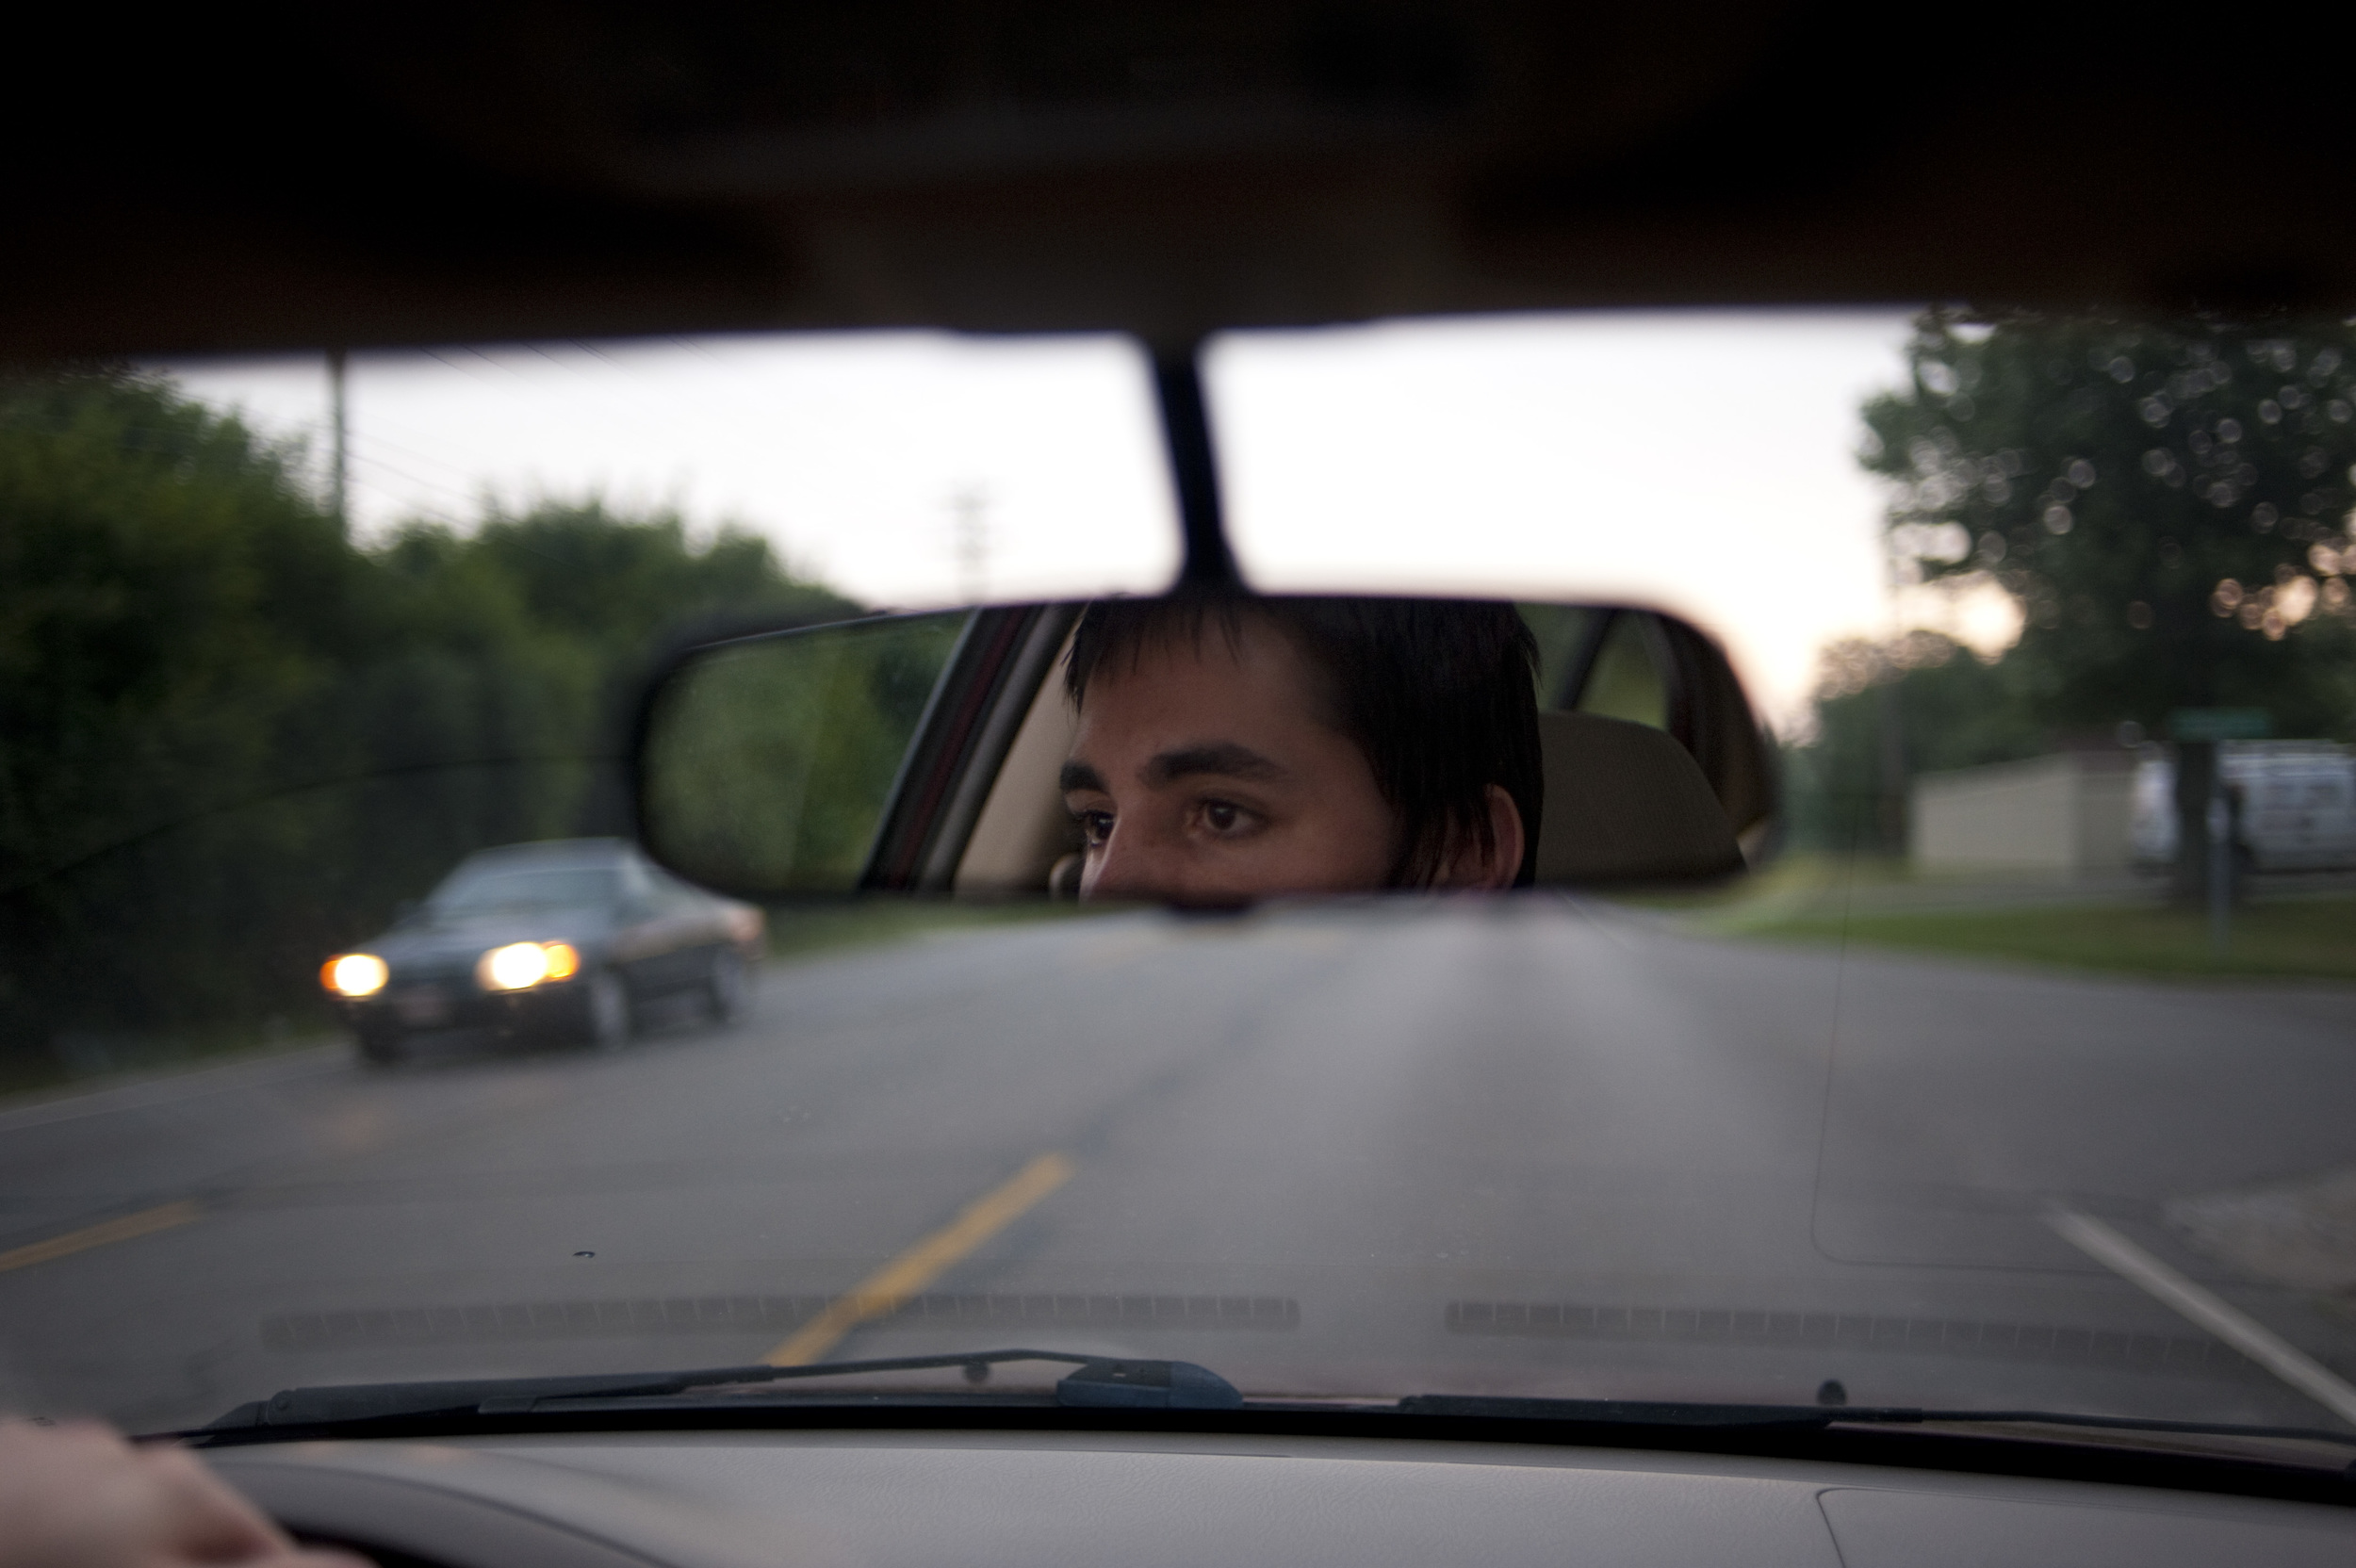 A user drives to a neighoring community to purchase a bag of black tar heroin.